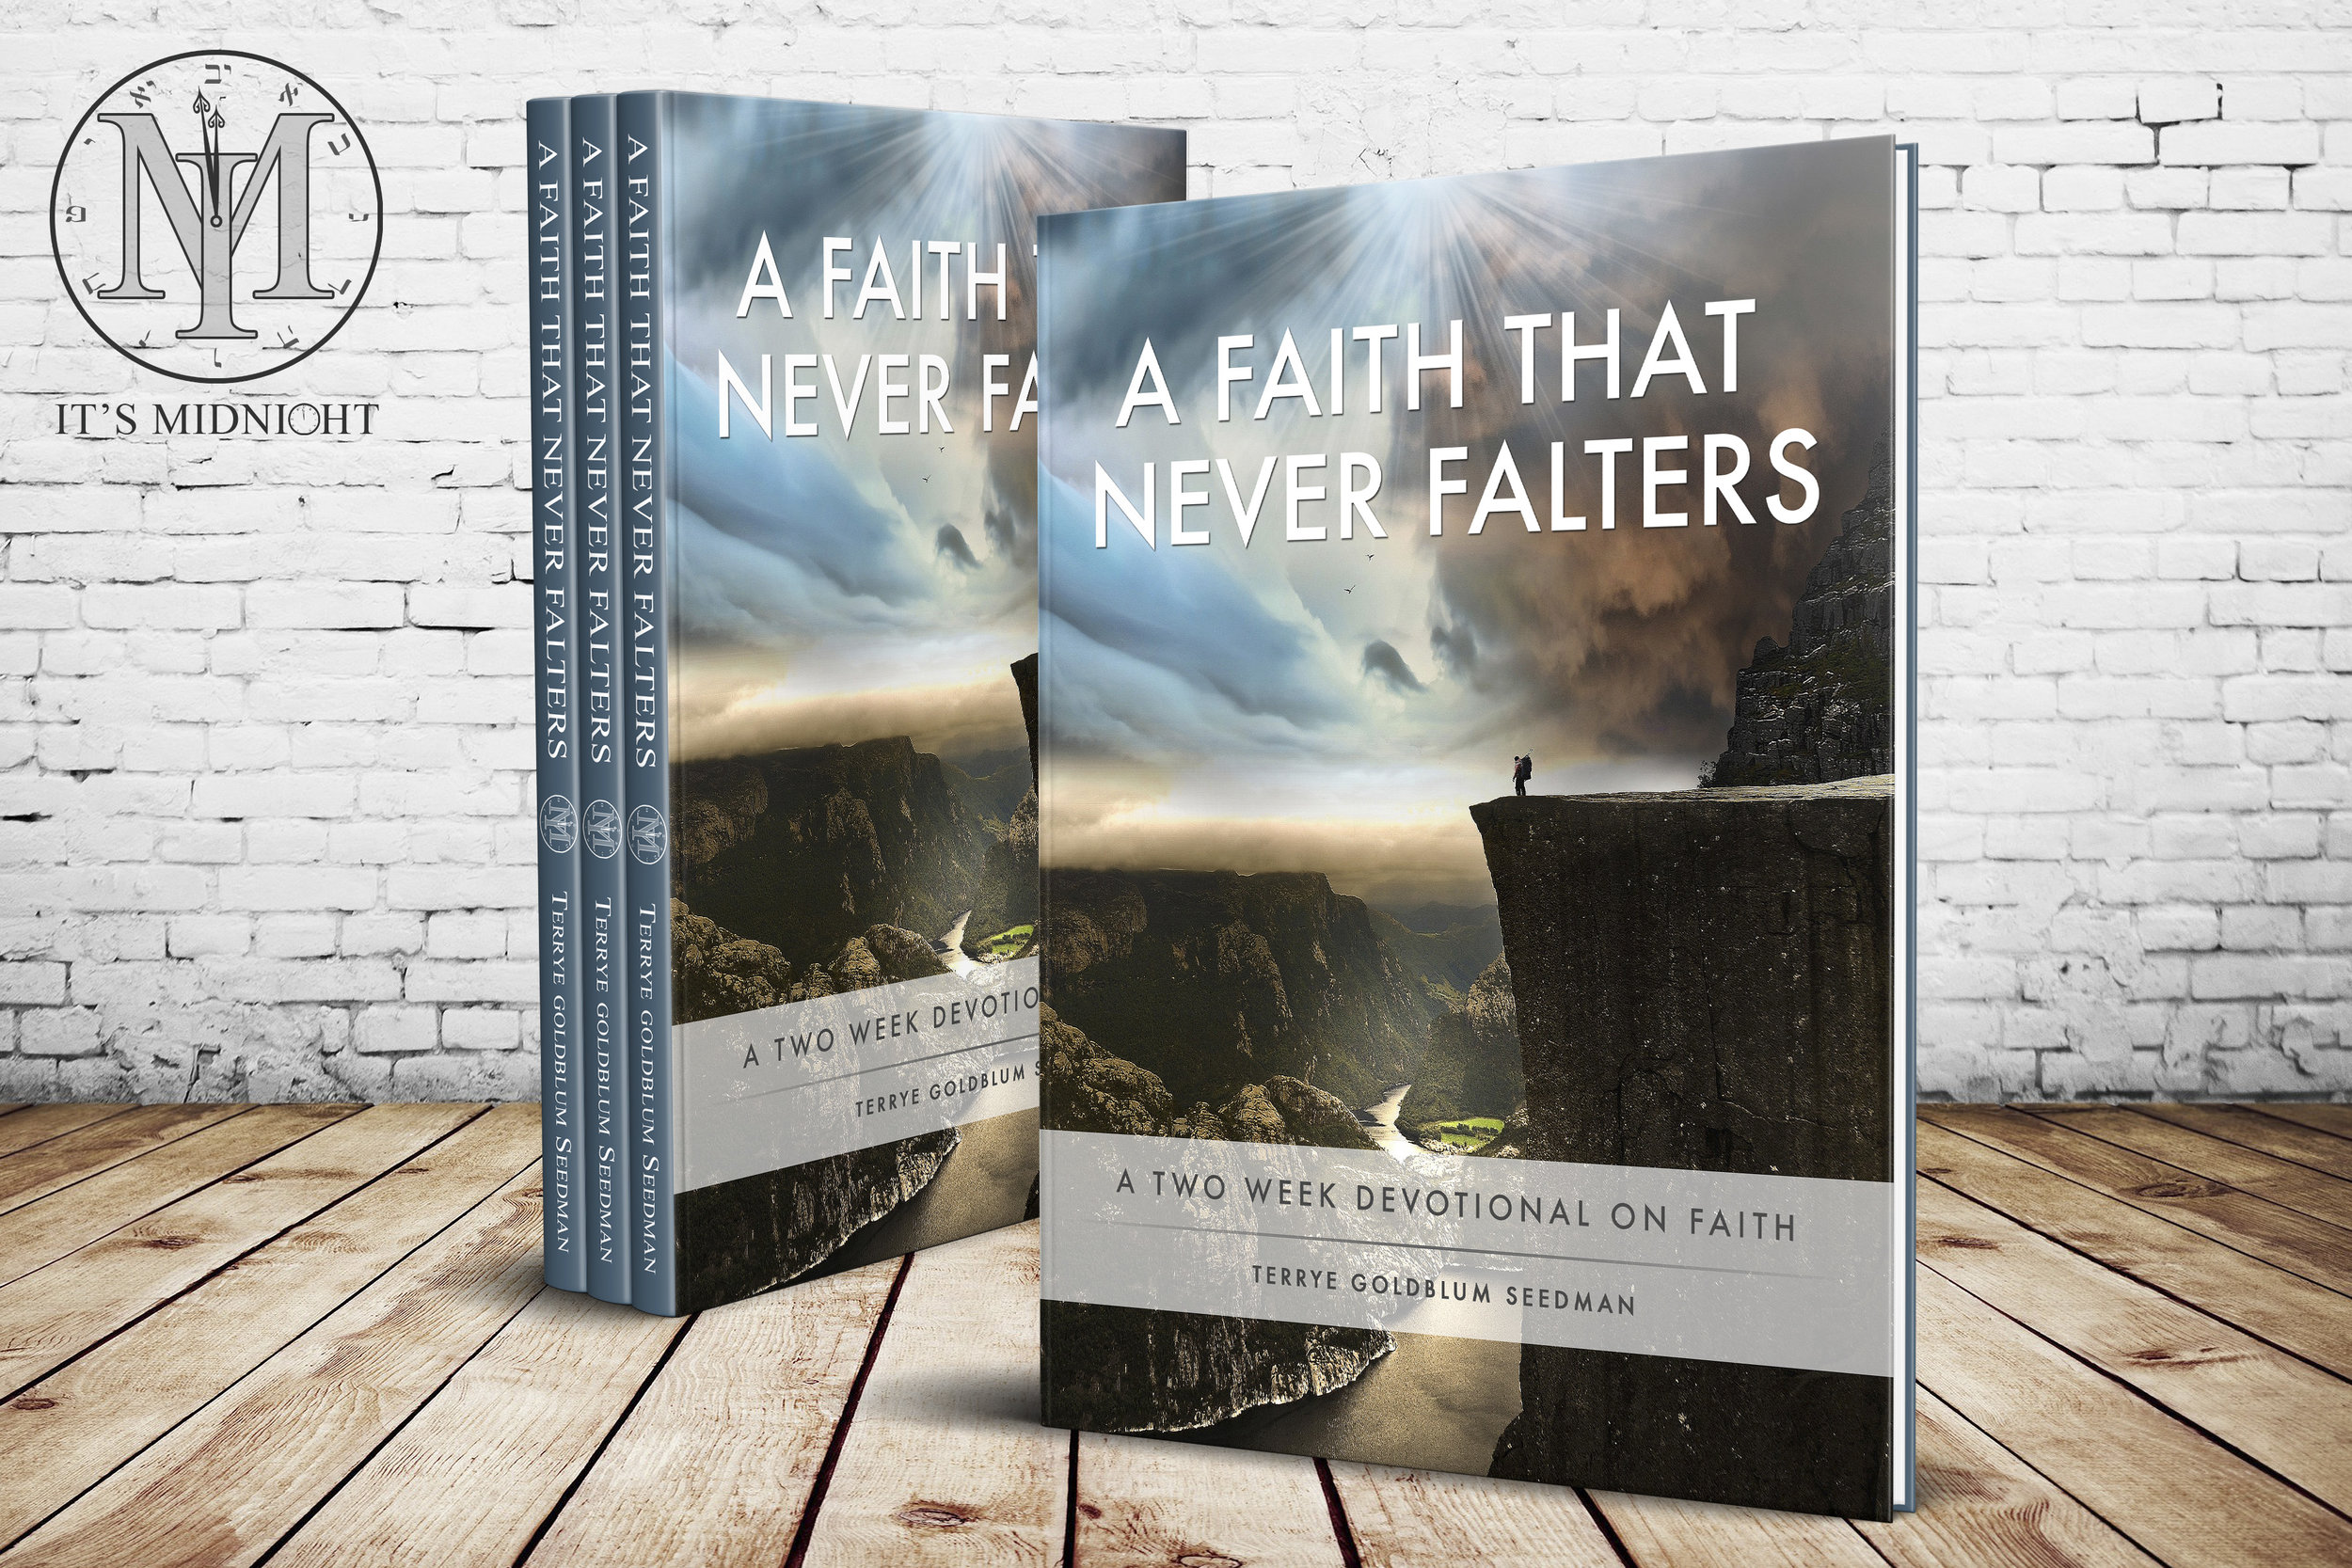 A Faith That Never Falters